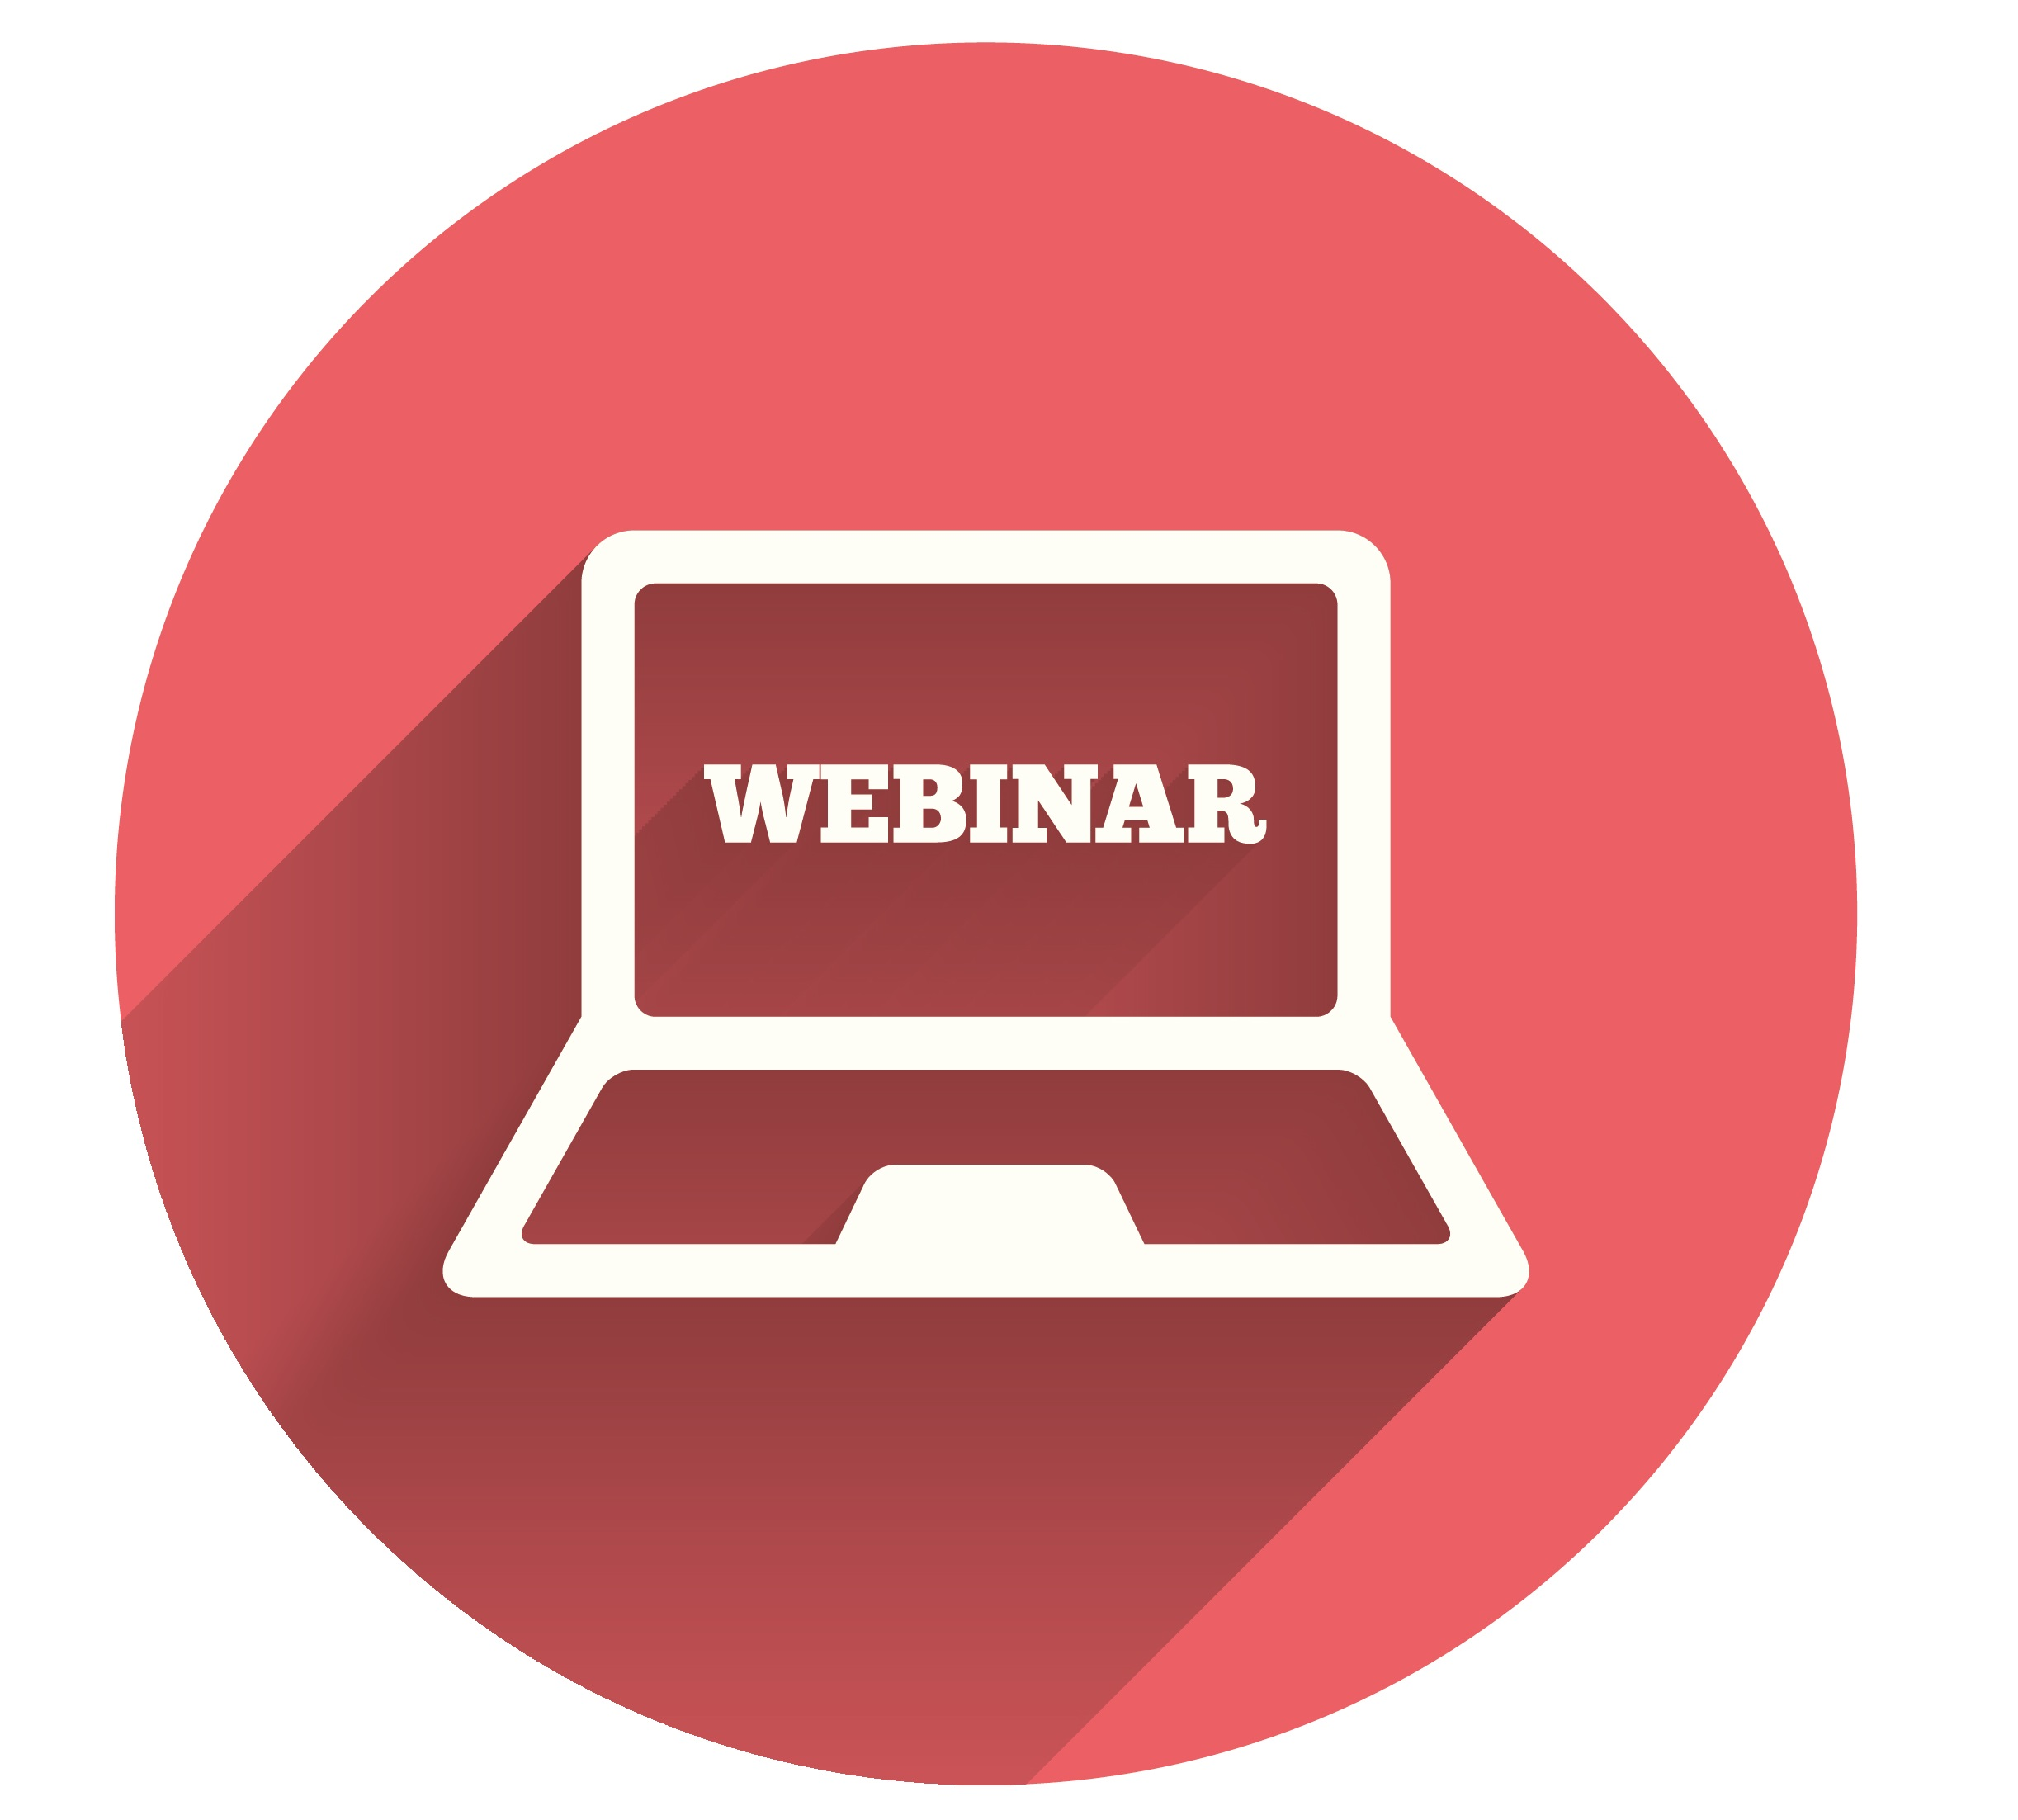 Medical Devices webinar on computer